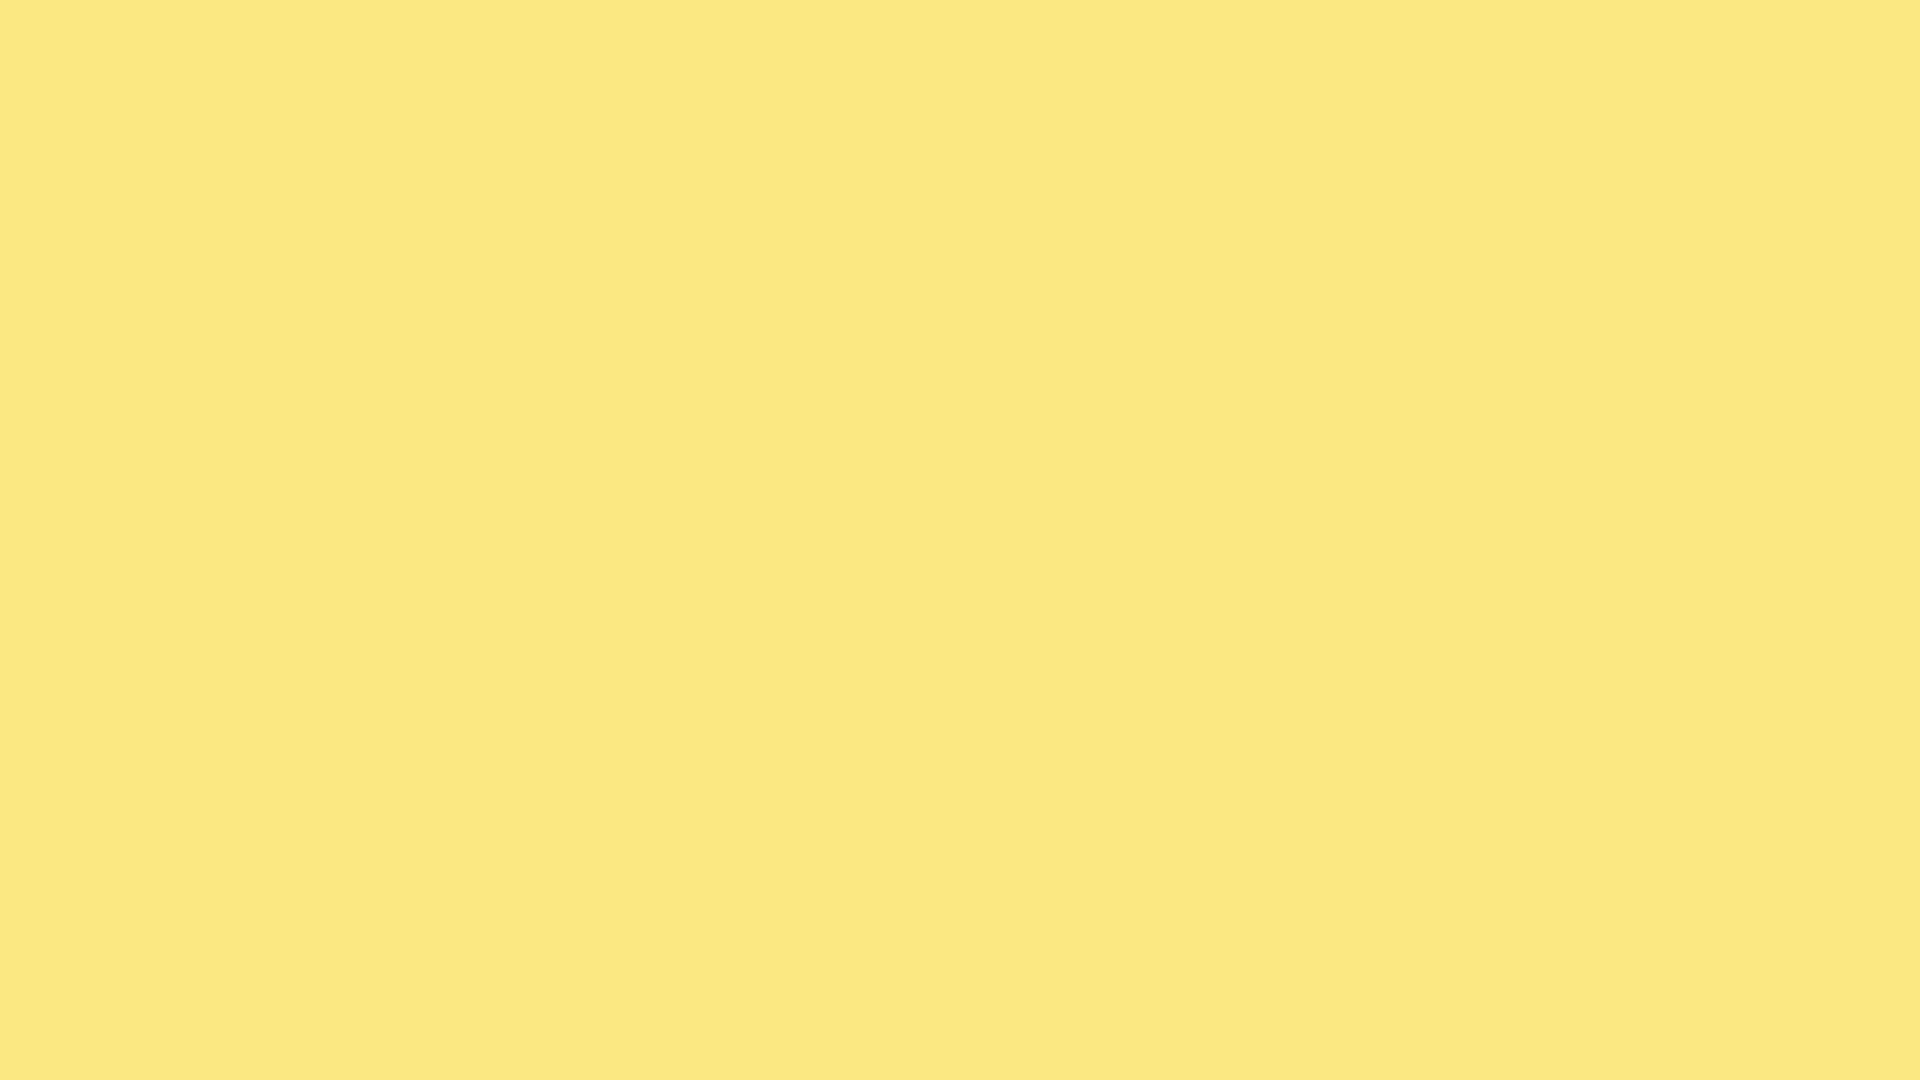 1920x1080 Yellow Crayola Solid Color Background